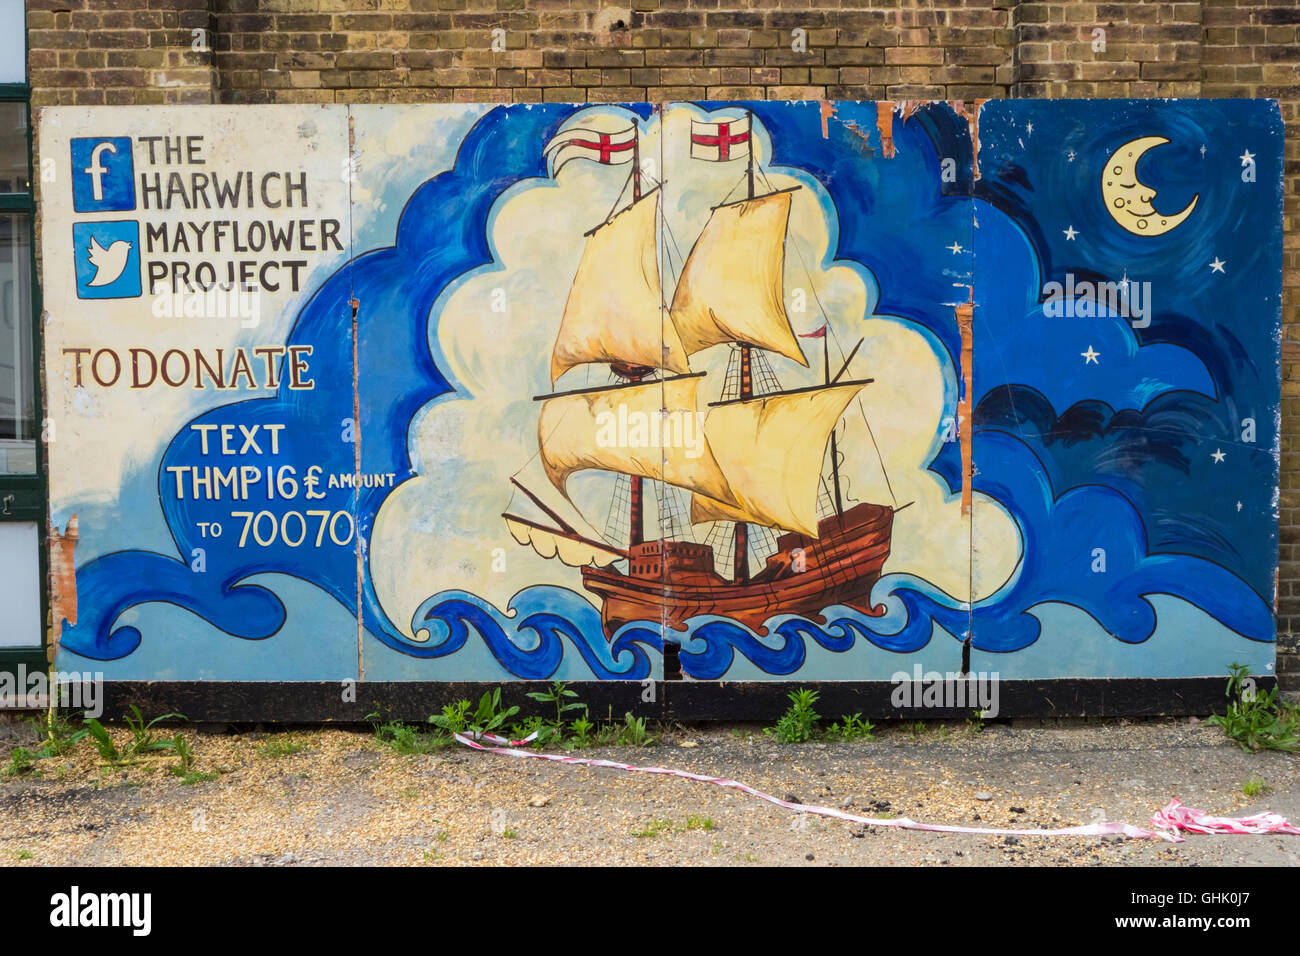 Die Harwich Mayflower Project sign Stockbild